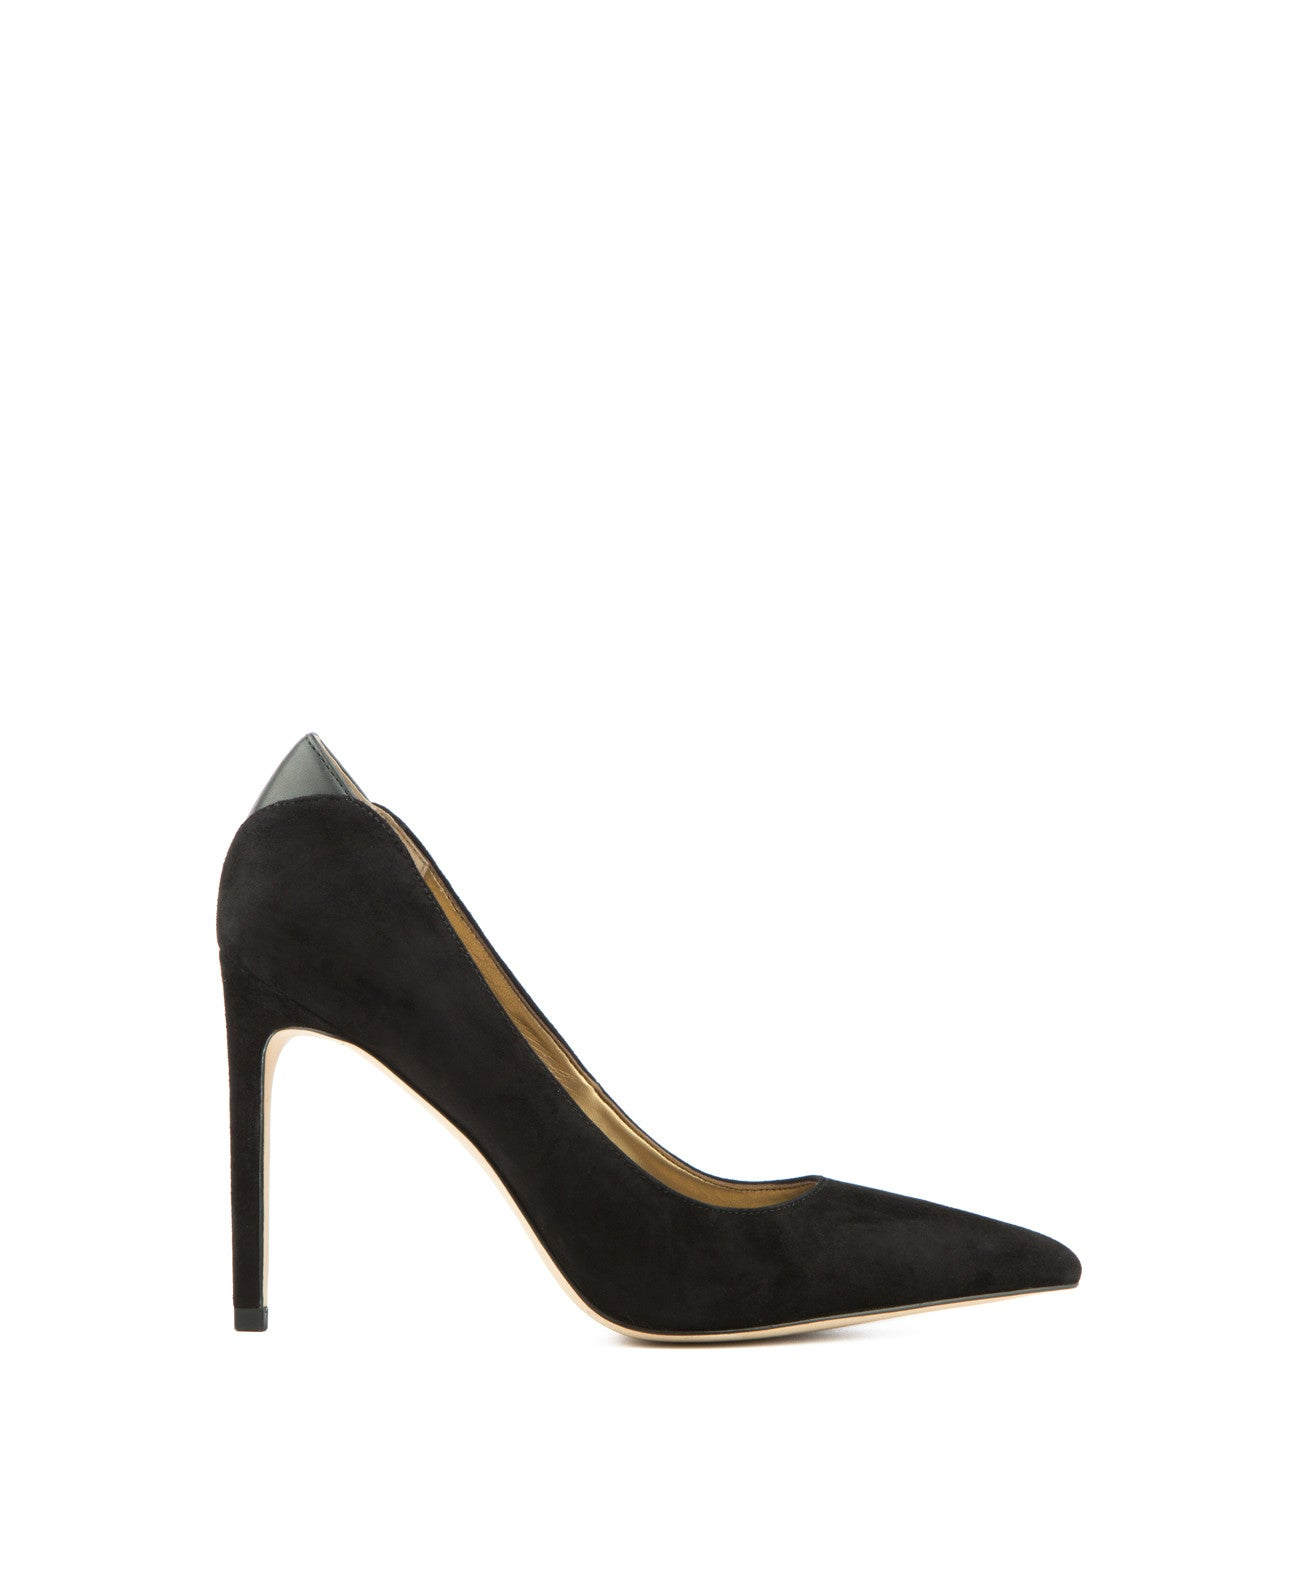 Dea Suede Pump in Black - Koko & Palenki - 1